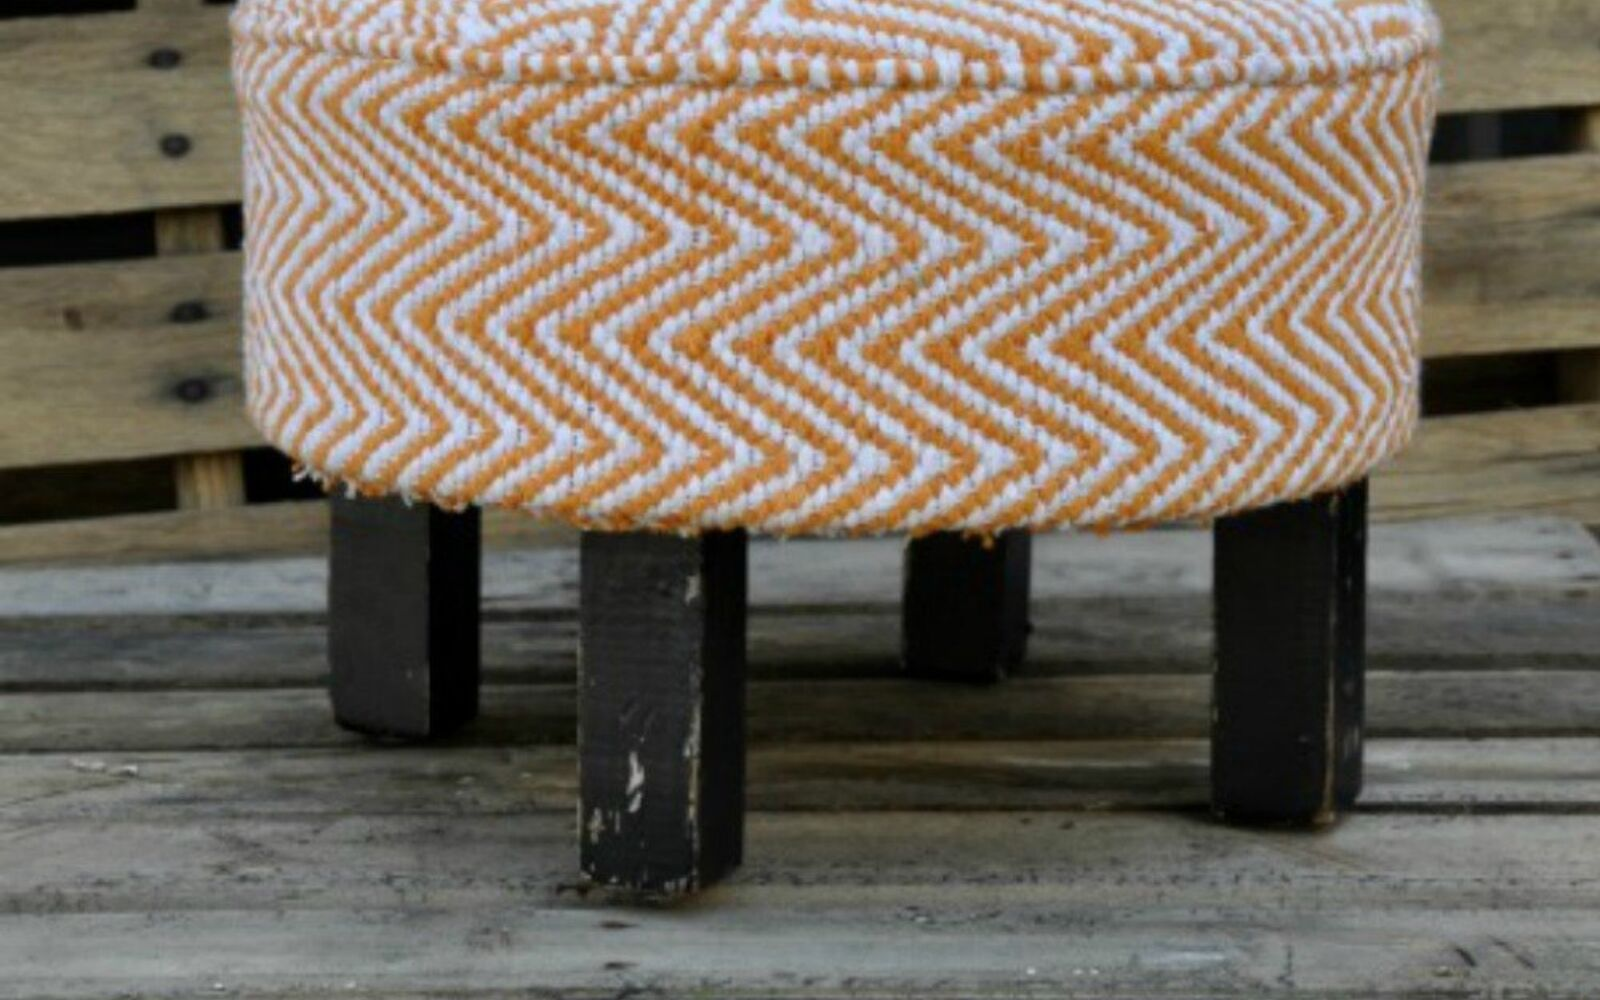 s transform dollar store rugs with these 11 stunning ideas, reupholster, Use a rug to give new life to an old ottoman